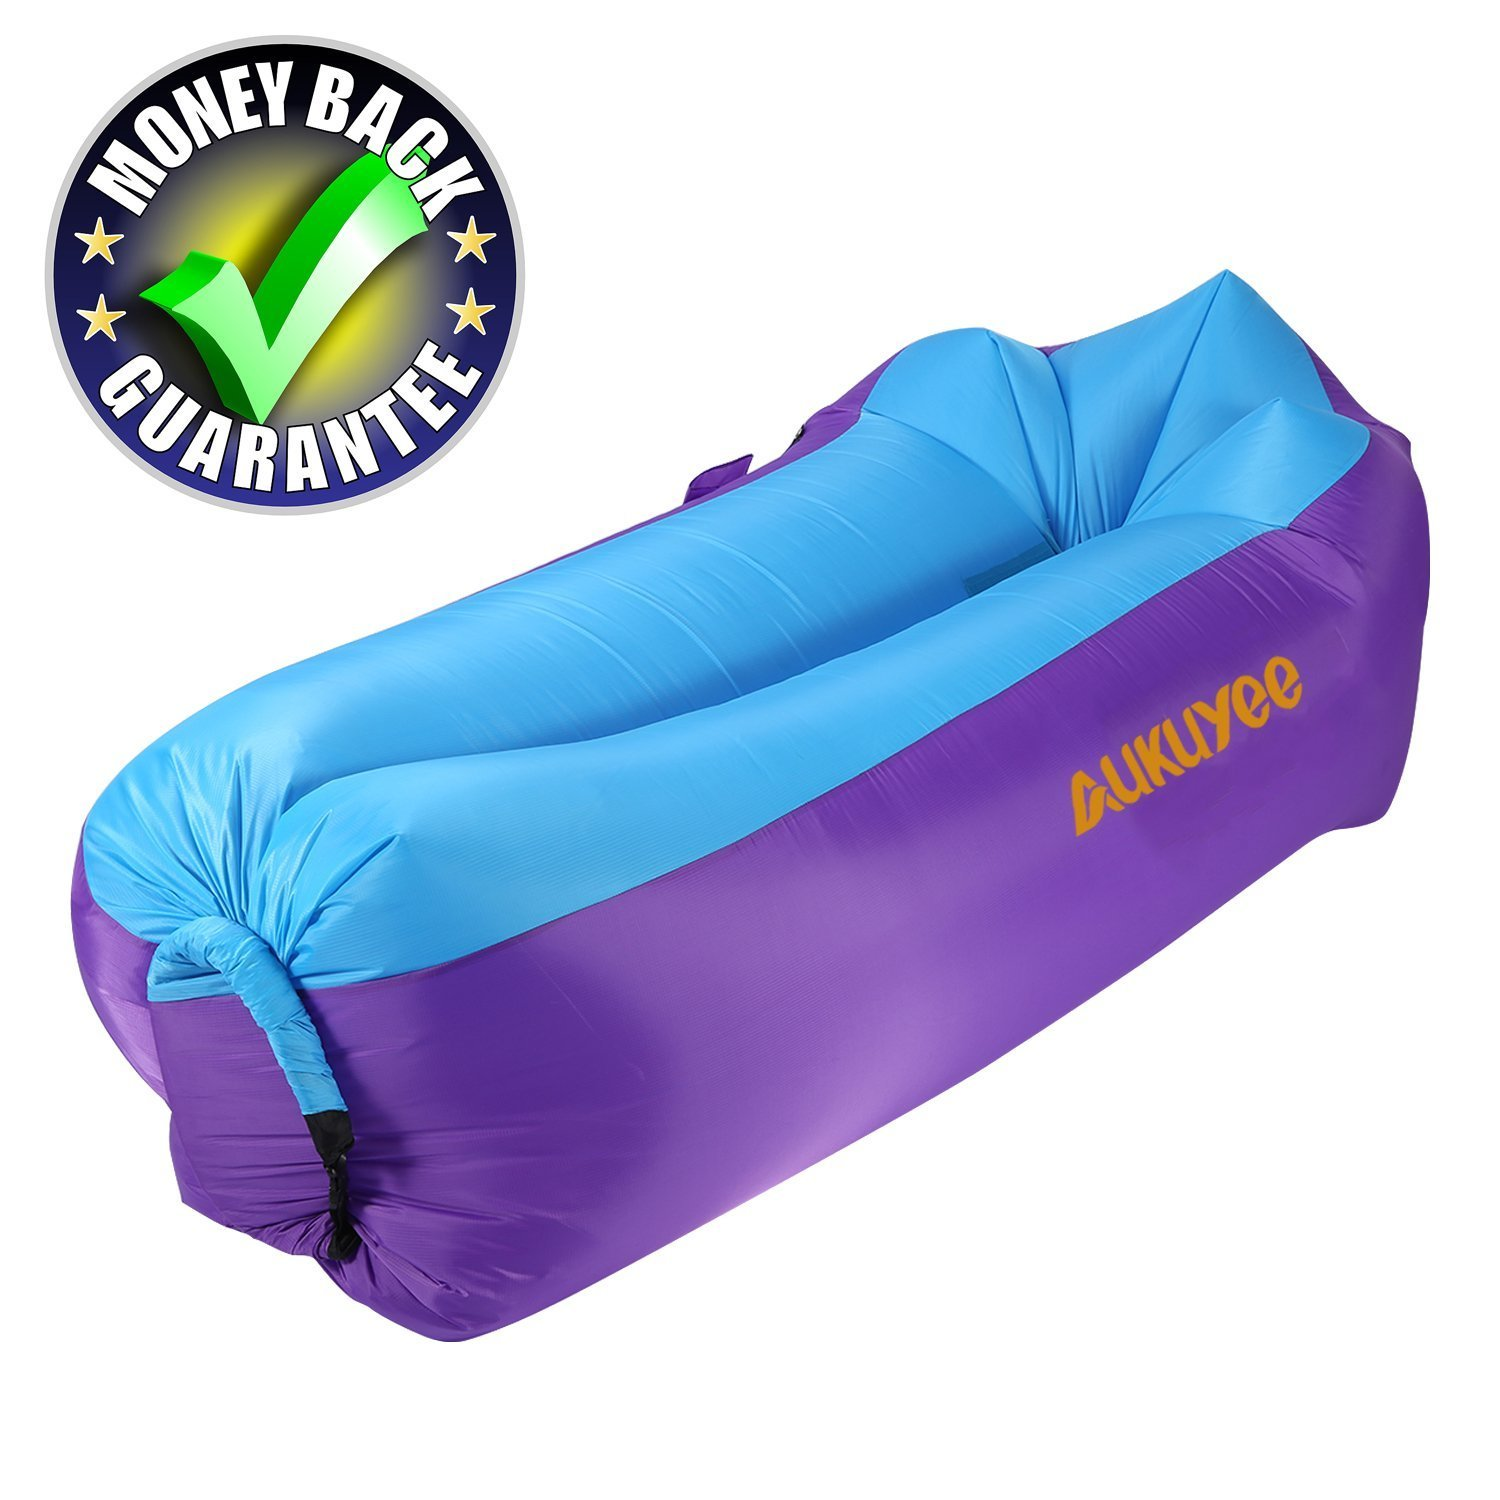 AUKUYEE Inflatable Lounger, Air Sofa Hammock Inflatable Chair Pool Float Ship Portable, Durable, Water Proof for Travelling, Camping, Hiking, Pool & Beach Parties with Carry Bag 2018 New Version by AUKUYEE